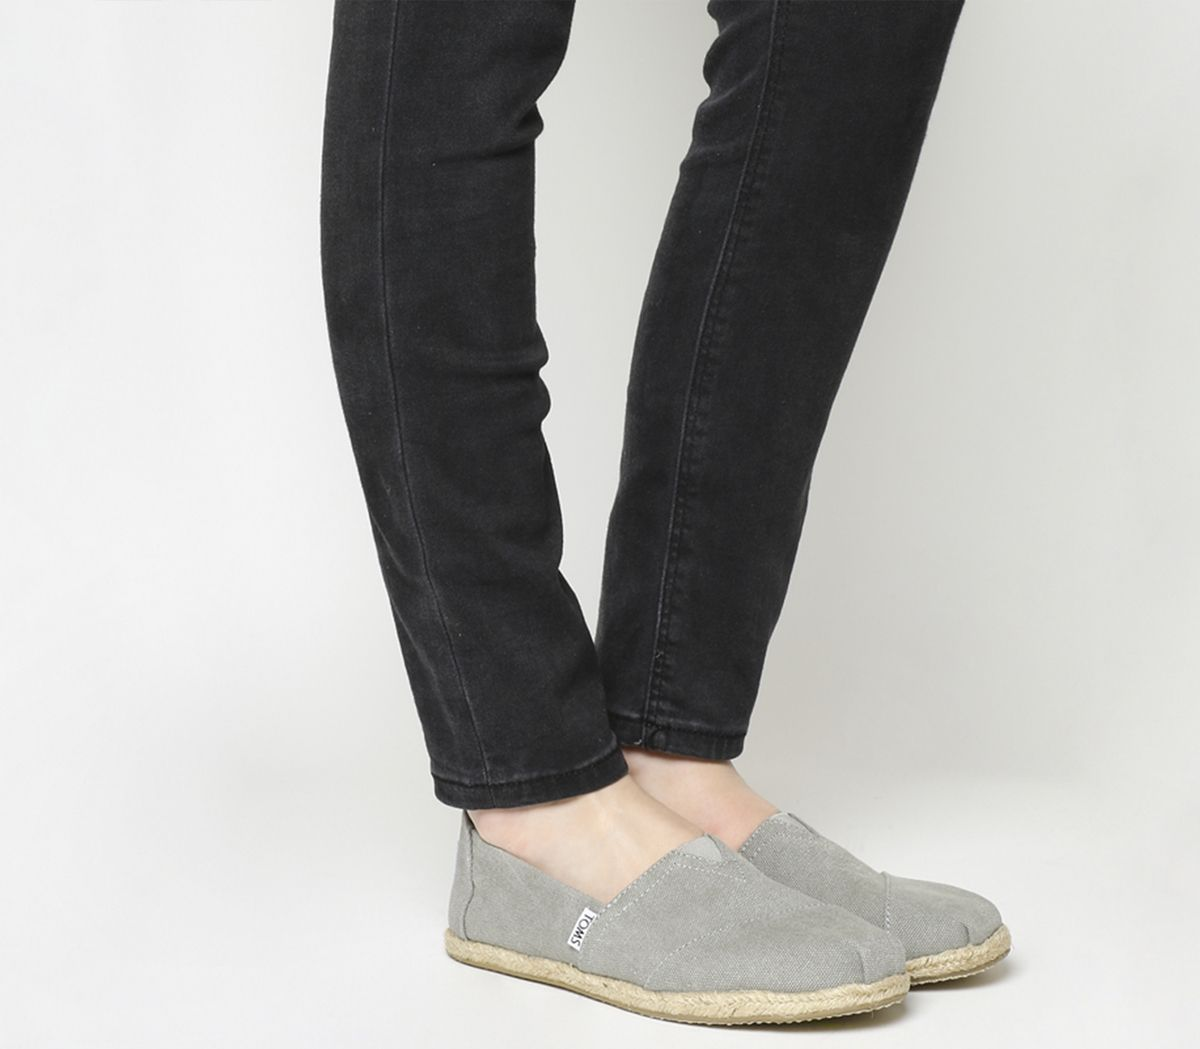 02cddf628af Toms Seasonal Classic Slip On Drizzle Grey Suede Rope Sole - Flats